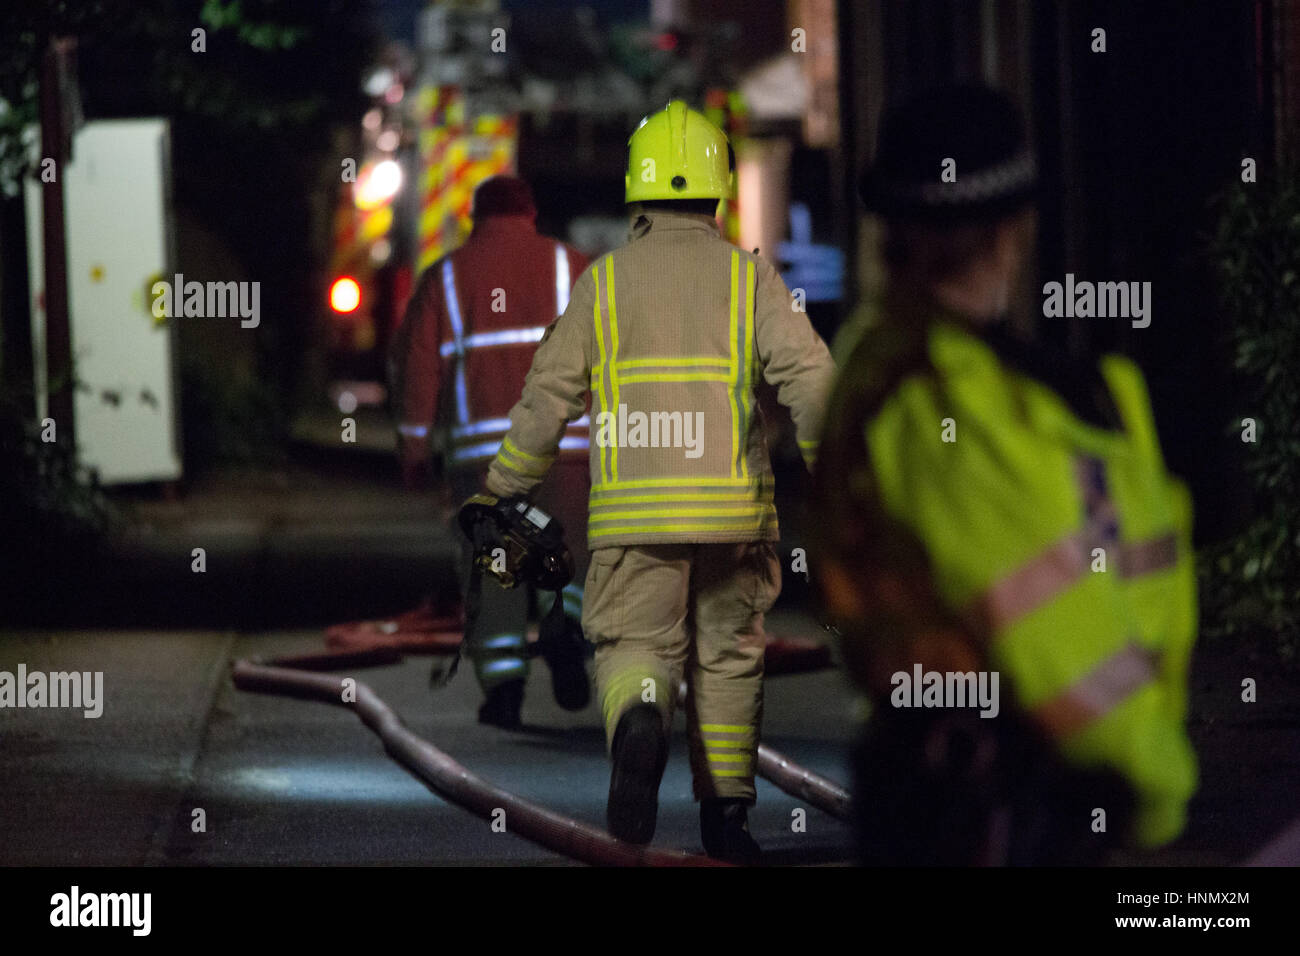 Oxford, UK. 14th Feb, 2017. Block of flats in Osney Lock, Oxford collapsed due to a big explosion. Fire crew in - Stock Image